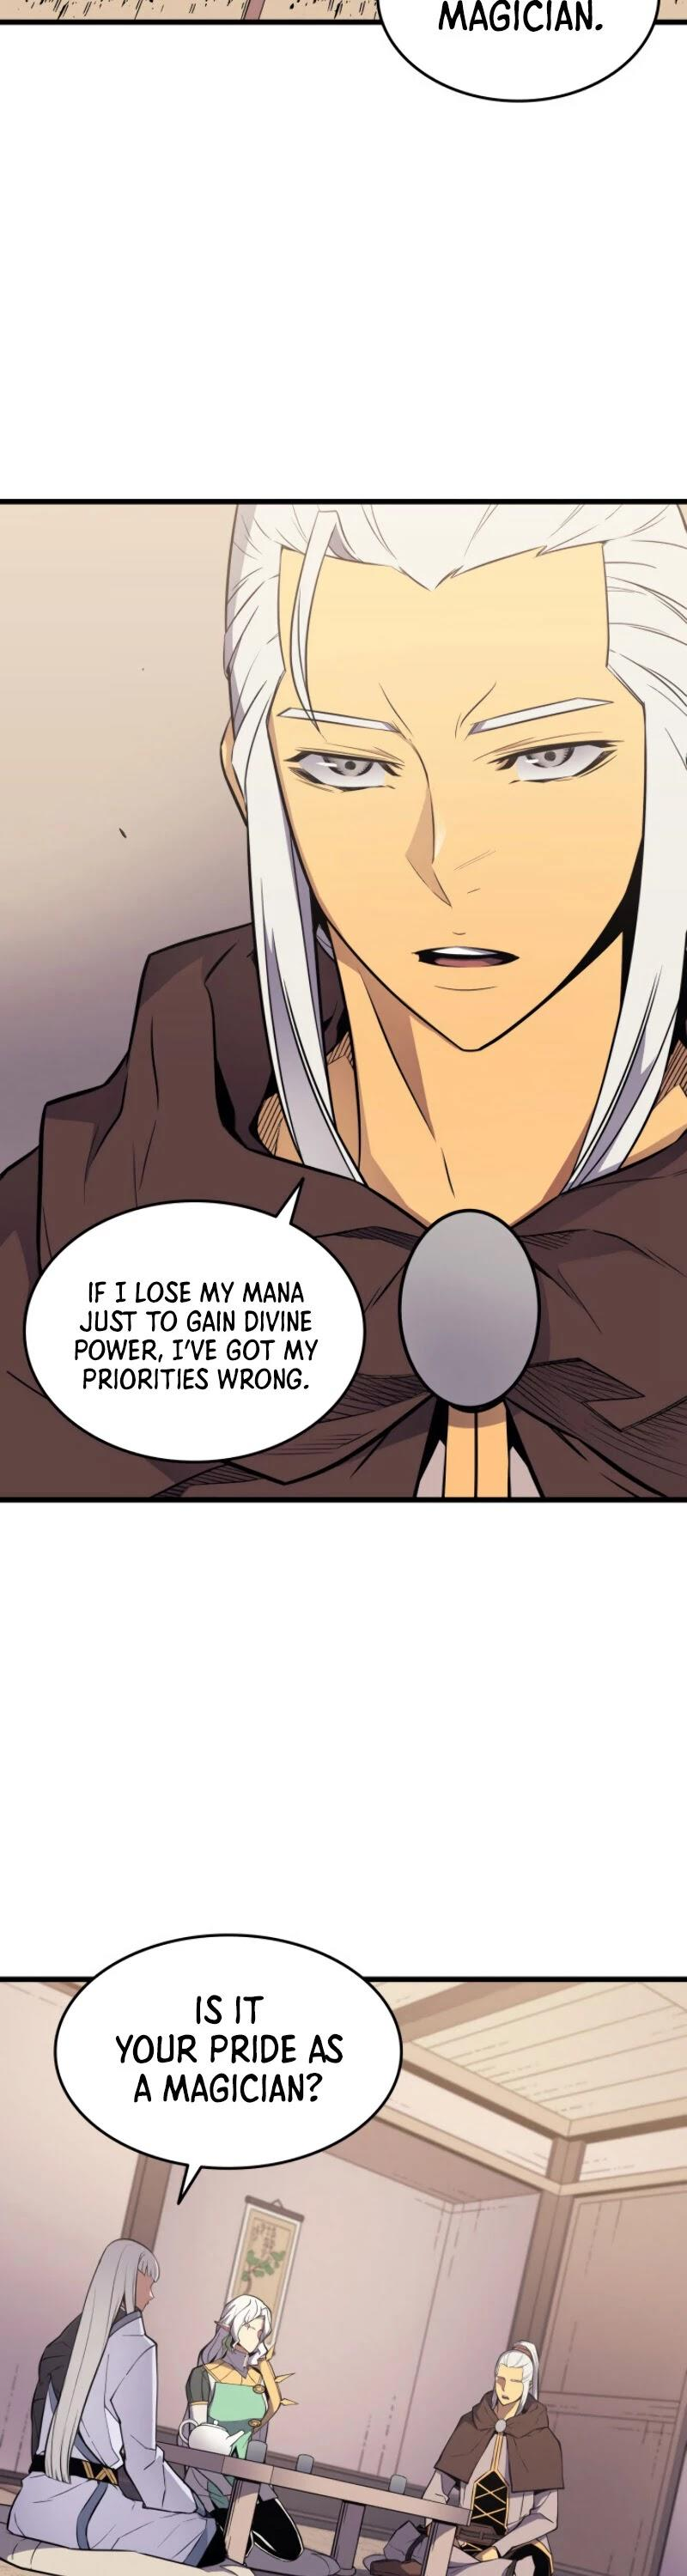 The Great Mage Returns After 4000 Years Chapter 88 page 7 - Mangakakalots.com